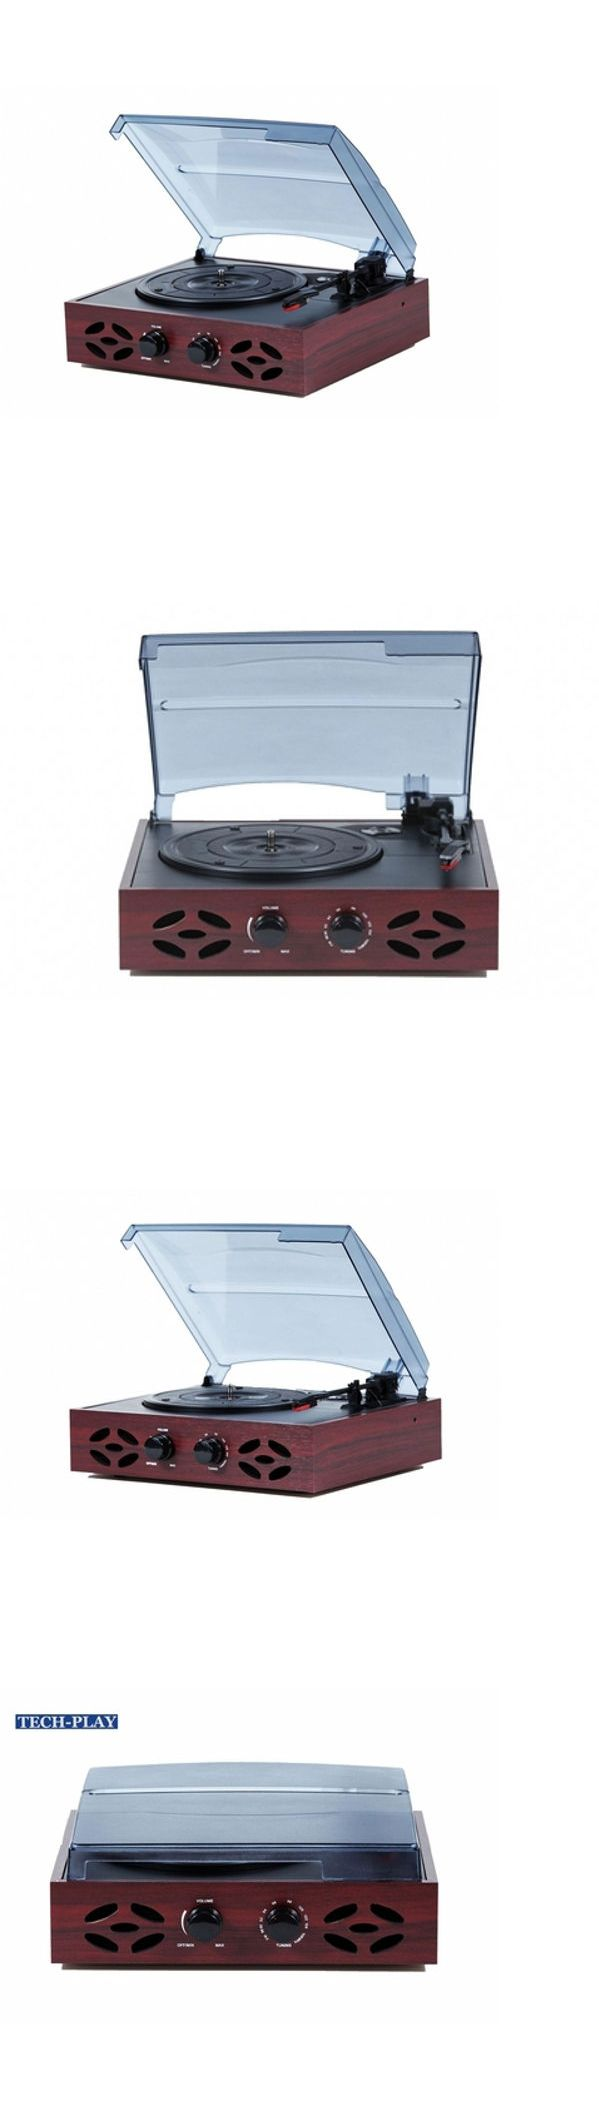 Record Players Home Turntables: Techplay Odc15 Retro Classic 3-Speed Wooden Record Player Turntable Fm Radio New BUY IT NOW ONLY: $47.99